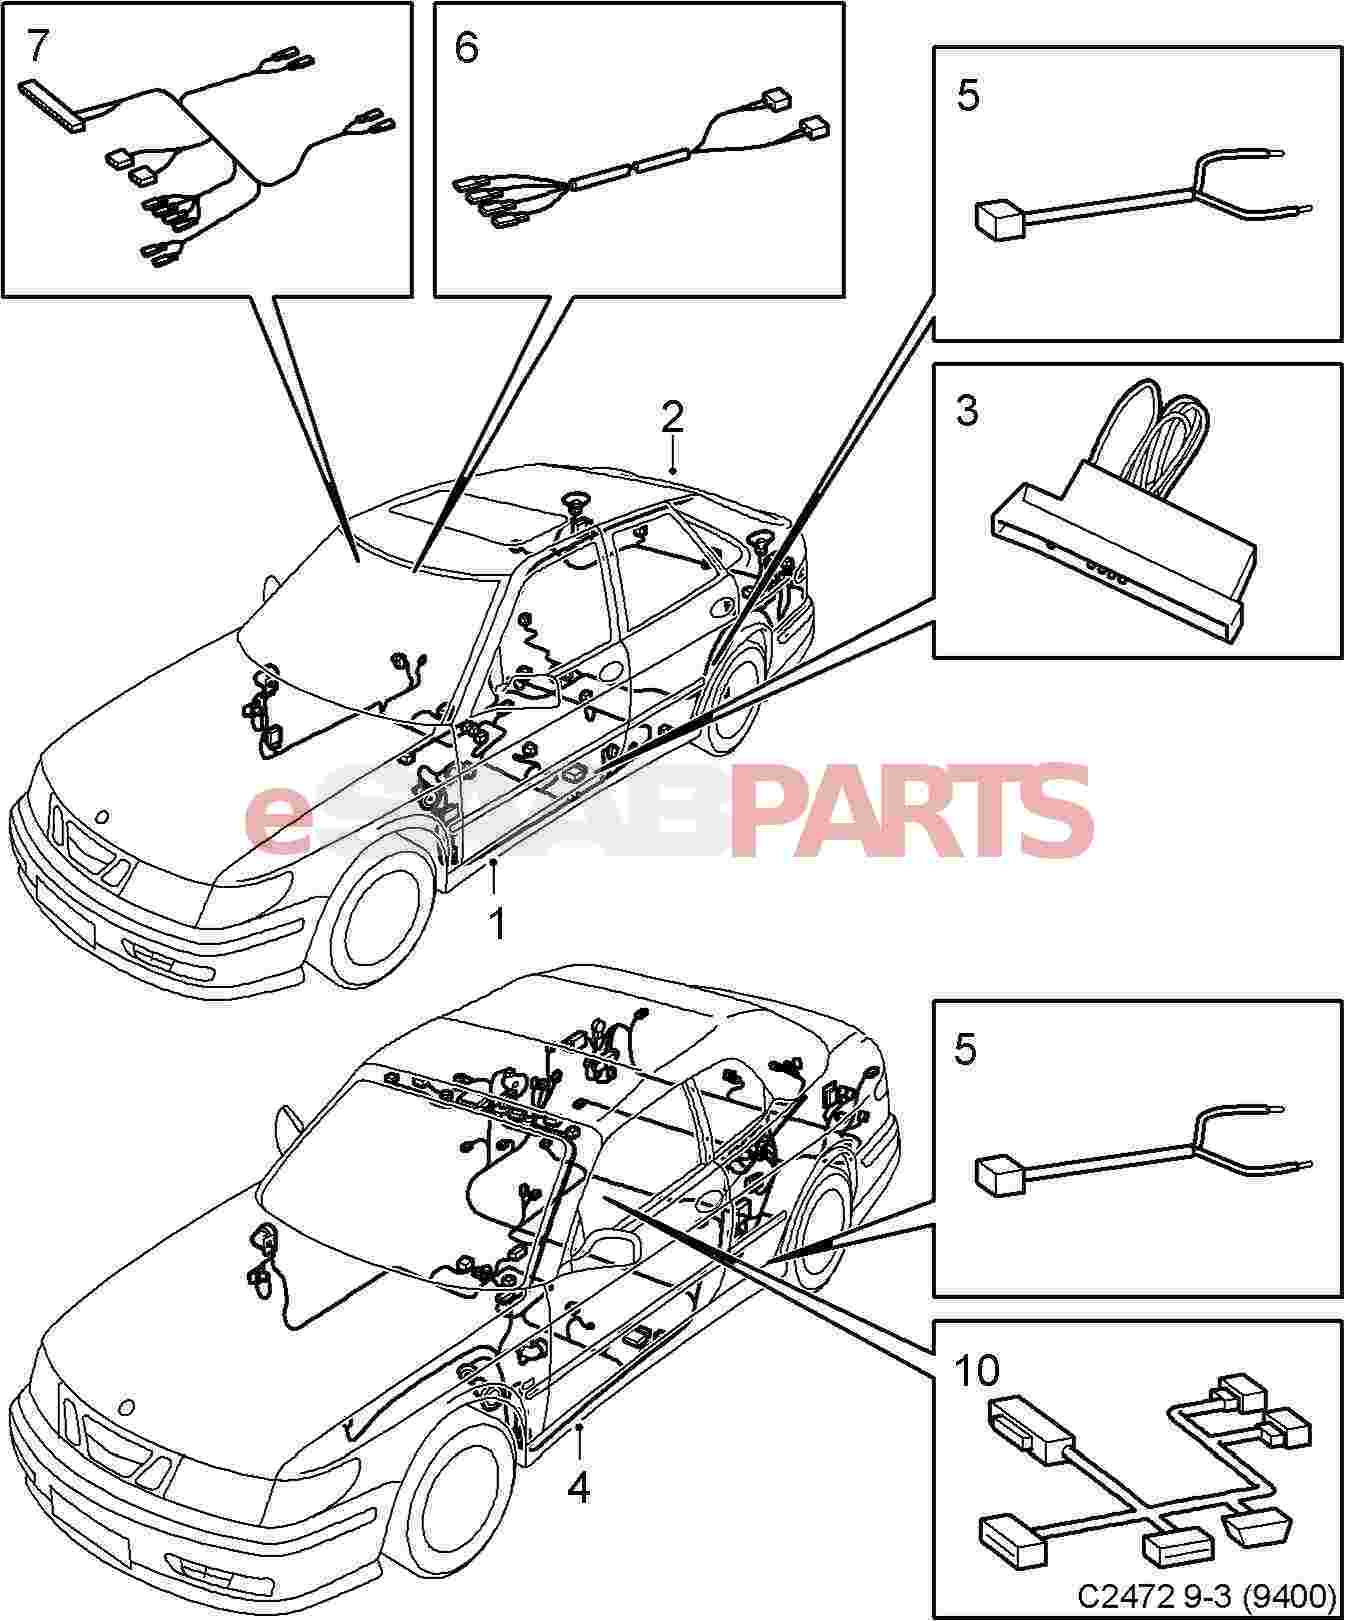 2005 saab 9 3 radio wiring diagram 7 1 home theater 93 stereo html imageresizertool com